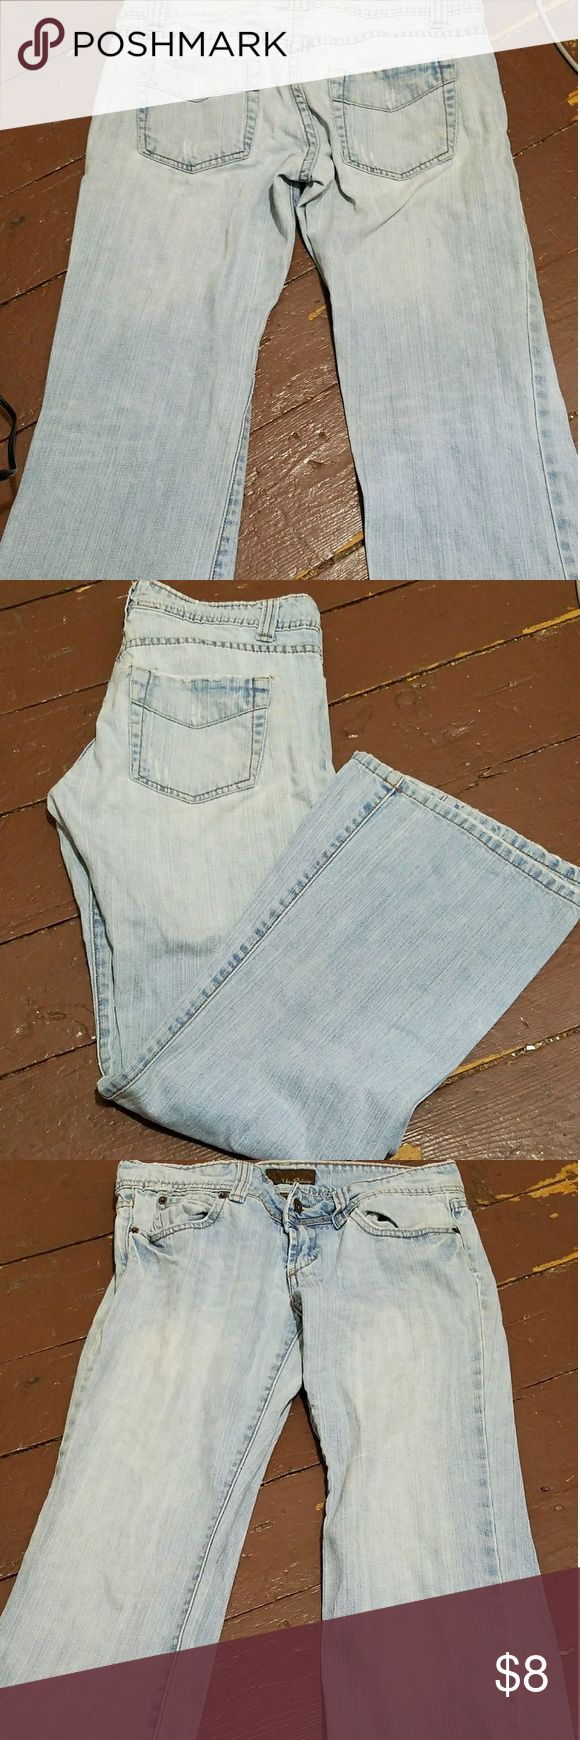 Urban behavior jeans Urban behavior size 7 / 29 (short) jeans urban behavior Jeans